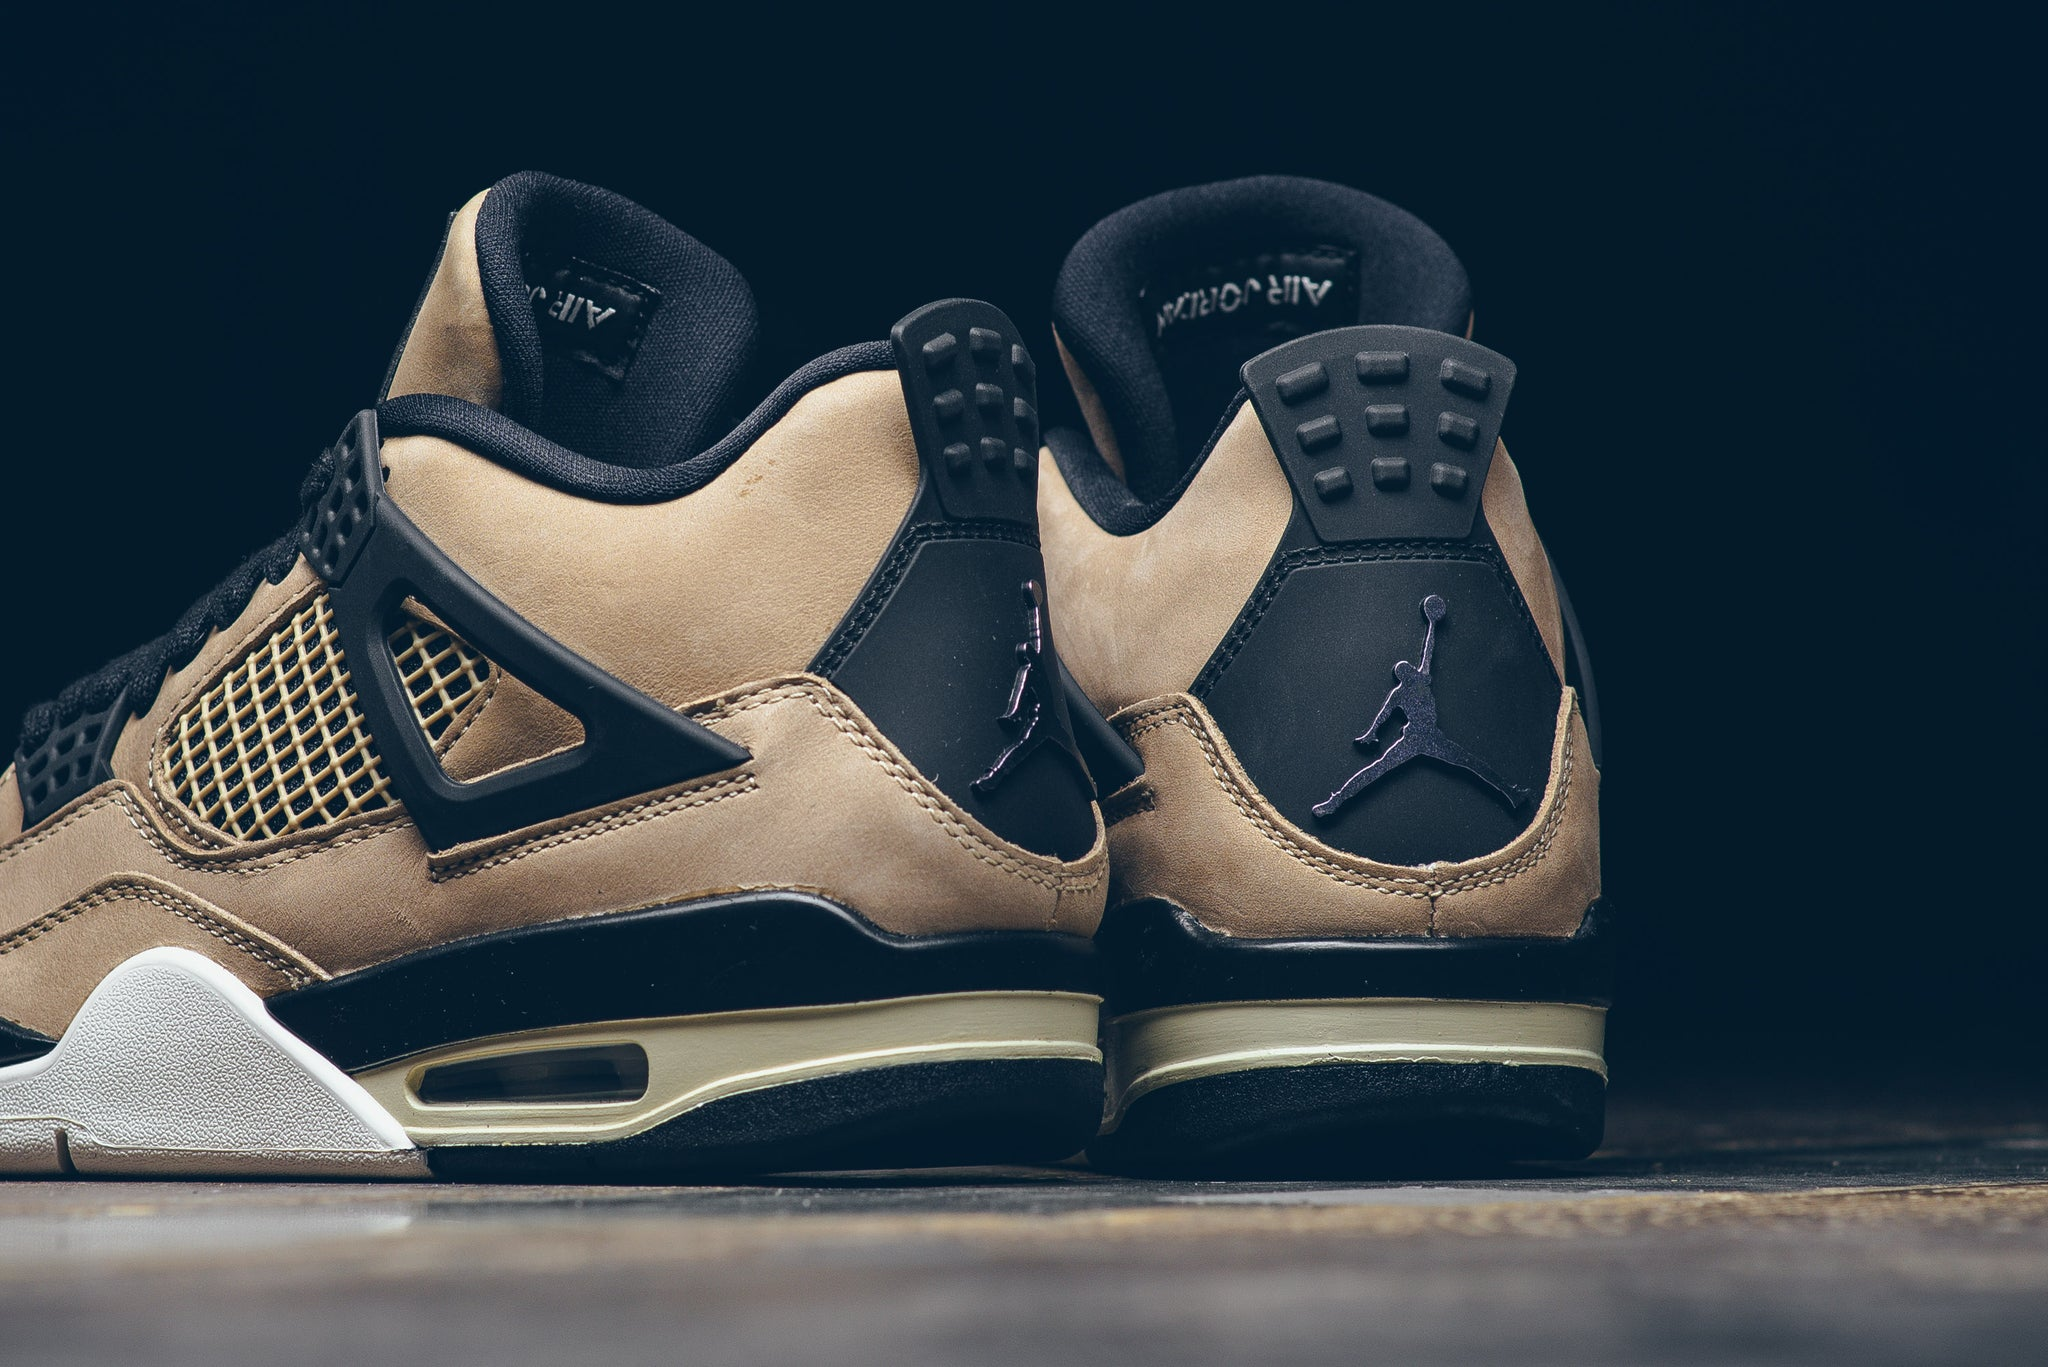 competitive price 423be cf126 Women's Air Jordan 4 Retro 'Fossil' - Sneaker Politics